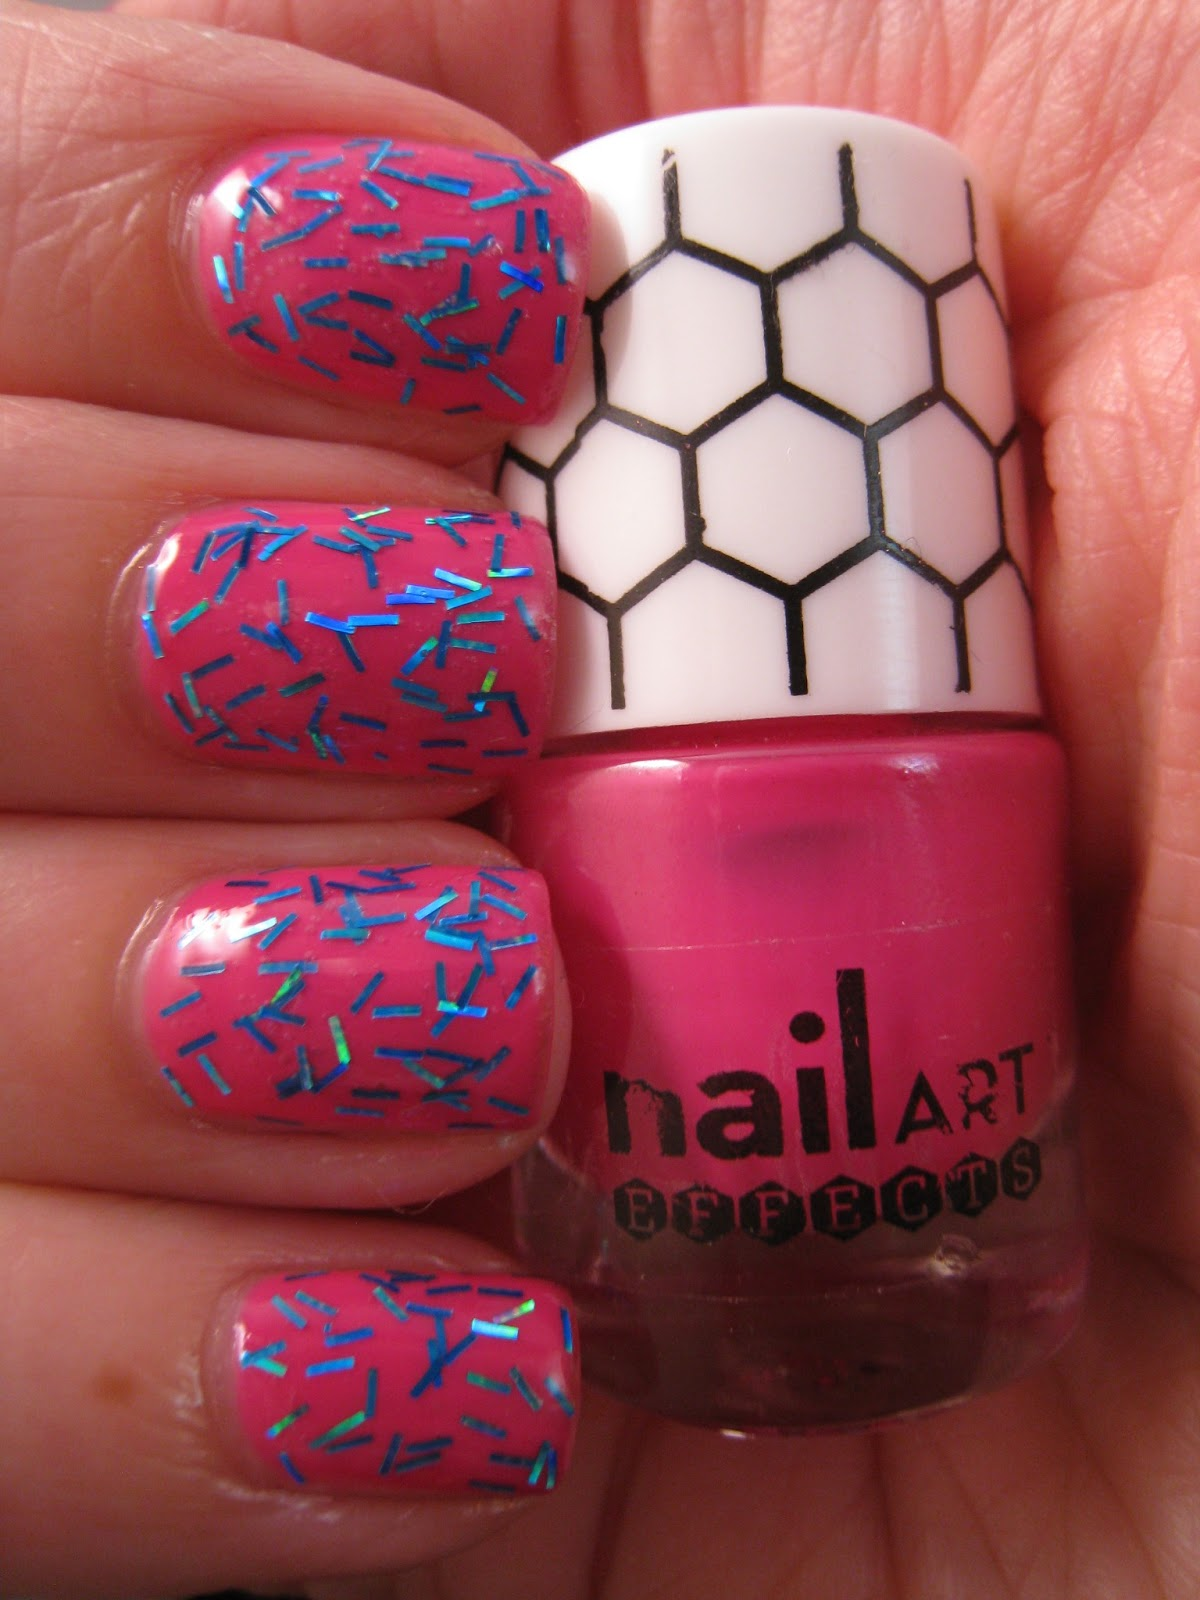 Naily perfect: Neon pink with blue holographic glitter bars by ...